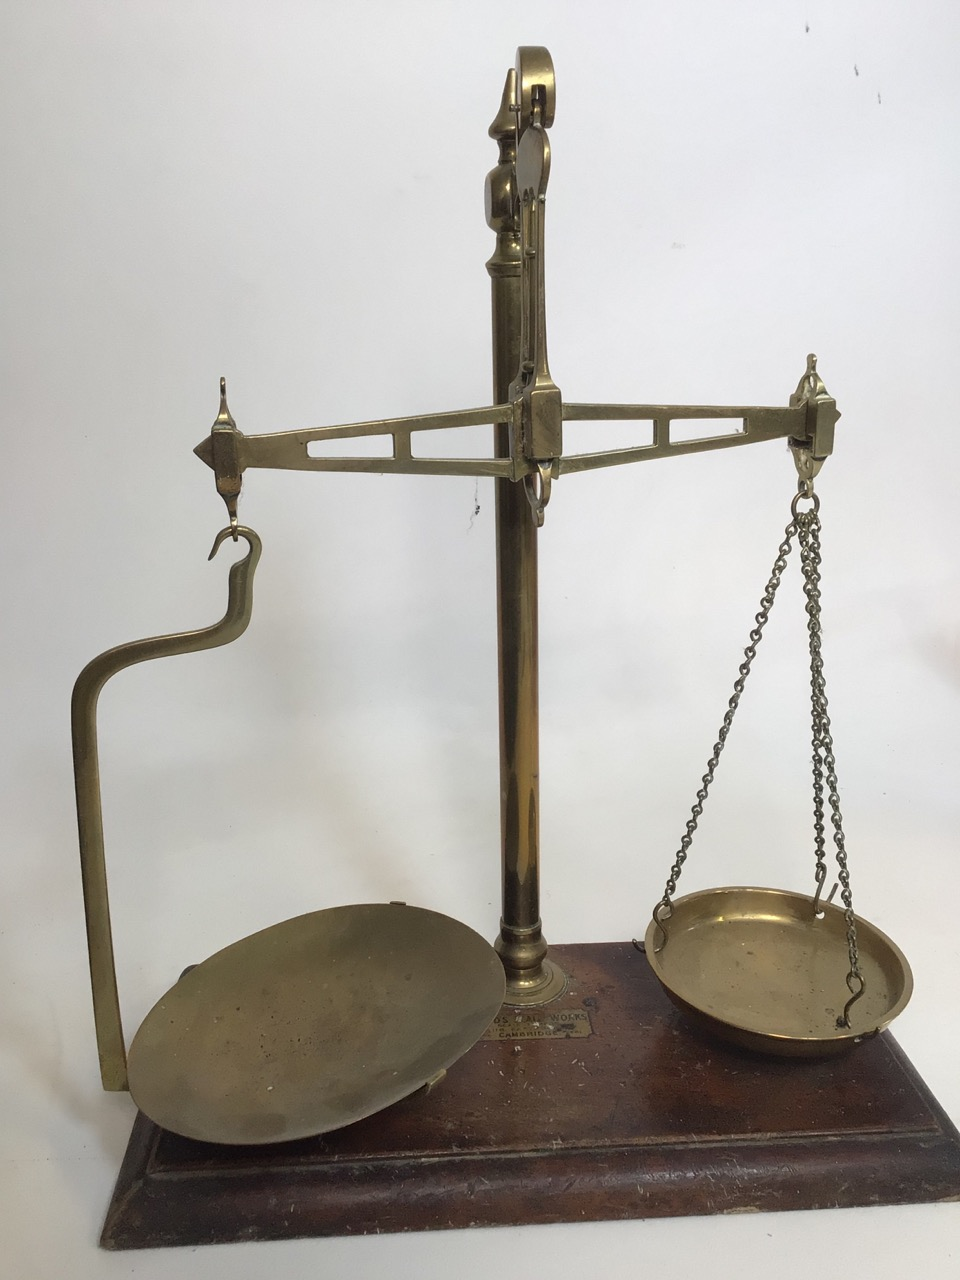 A set of brass post office scales. With original Todd's scale works label. H:43cm